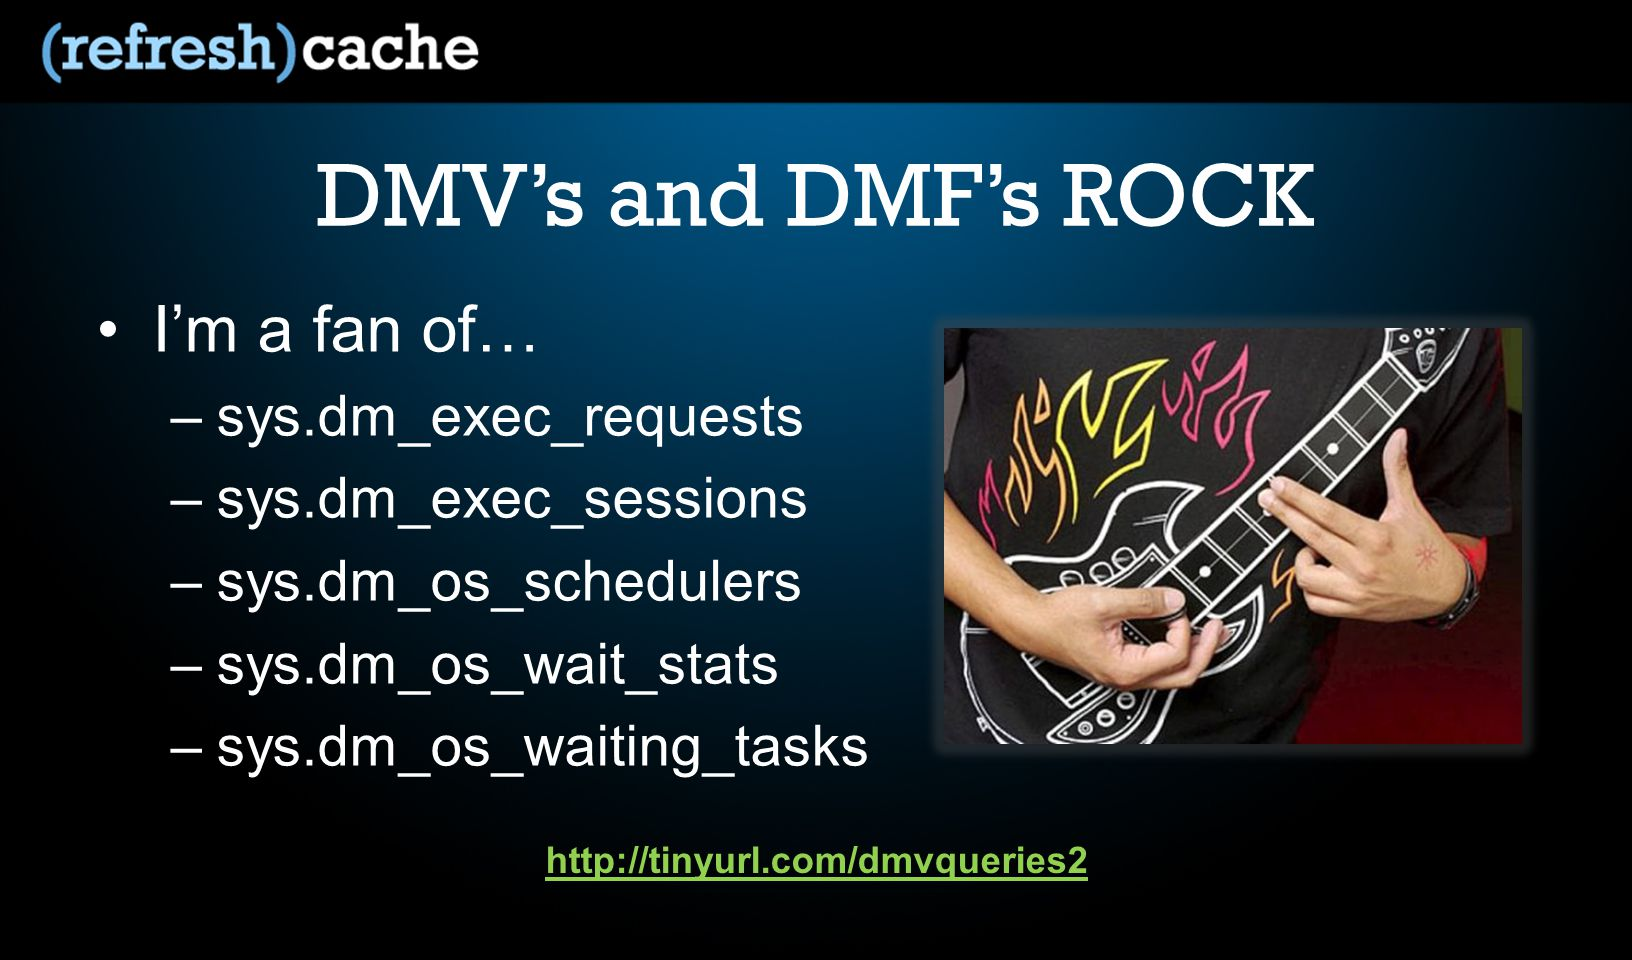 DMVs and DMFs ROCK Im a fan of… –sys.dm_exec_requests –sys.dm_exec_sessions –sys.dm_os_schedulers –sys.dm_os_wait_stats –sys.dm_os_waiting_tasks http://tinyurl.com/dmvqueries2